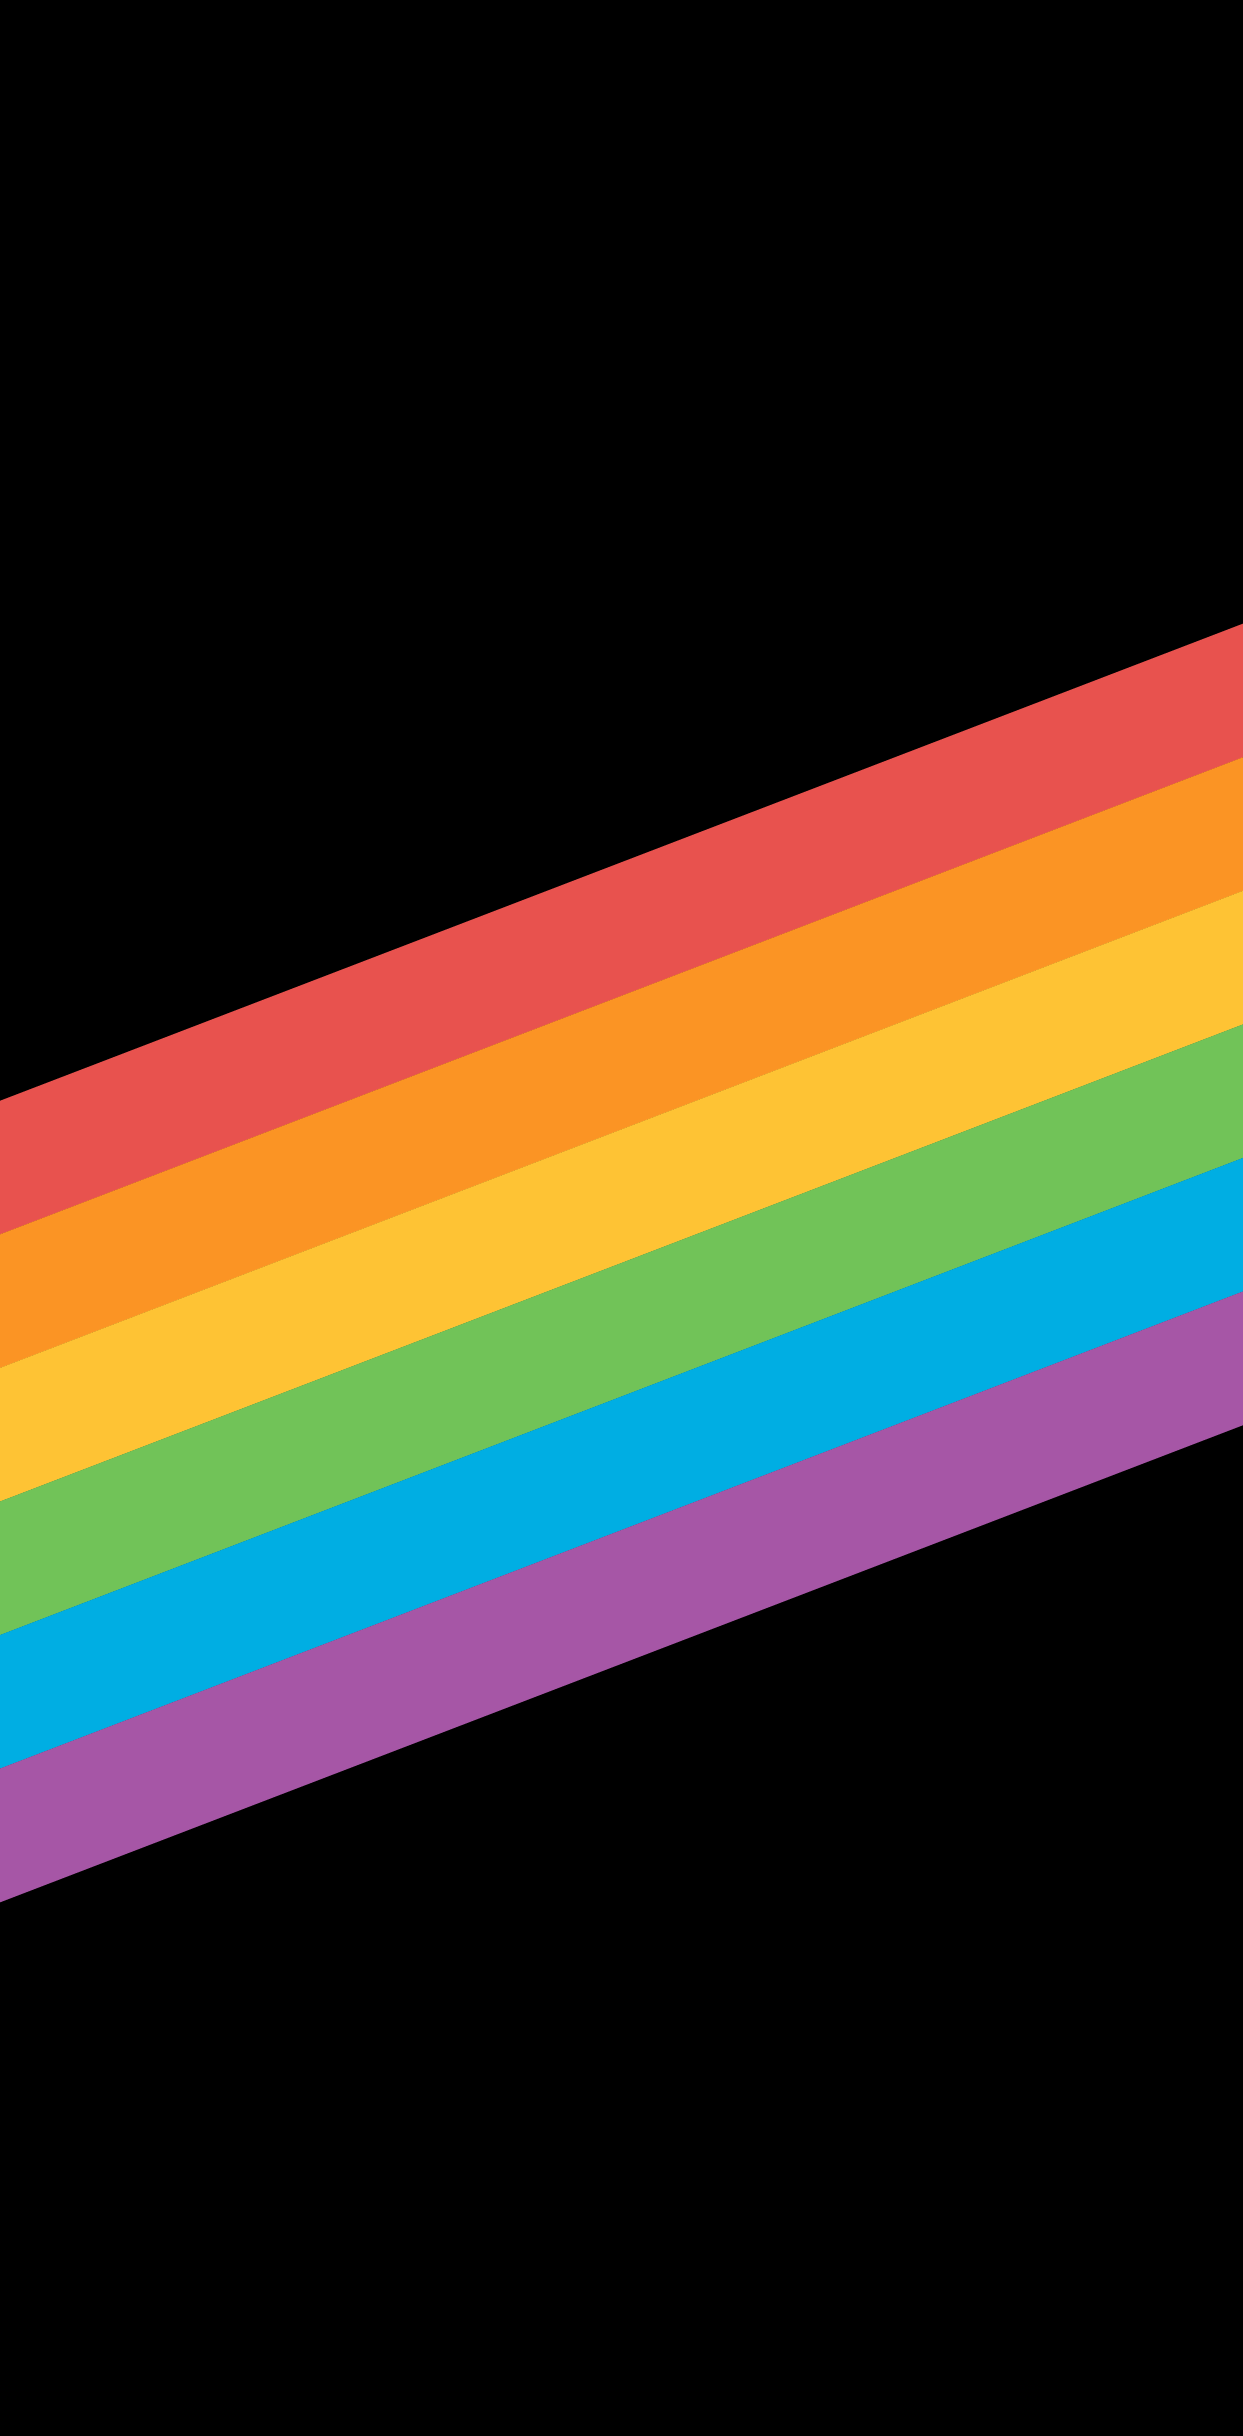 Rainbow flag design on black background